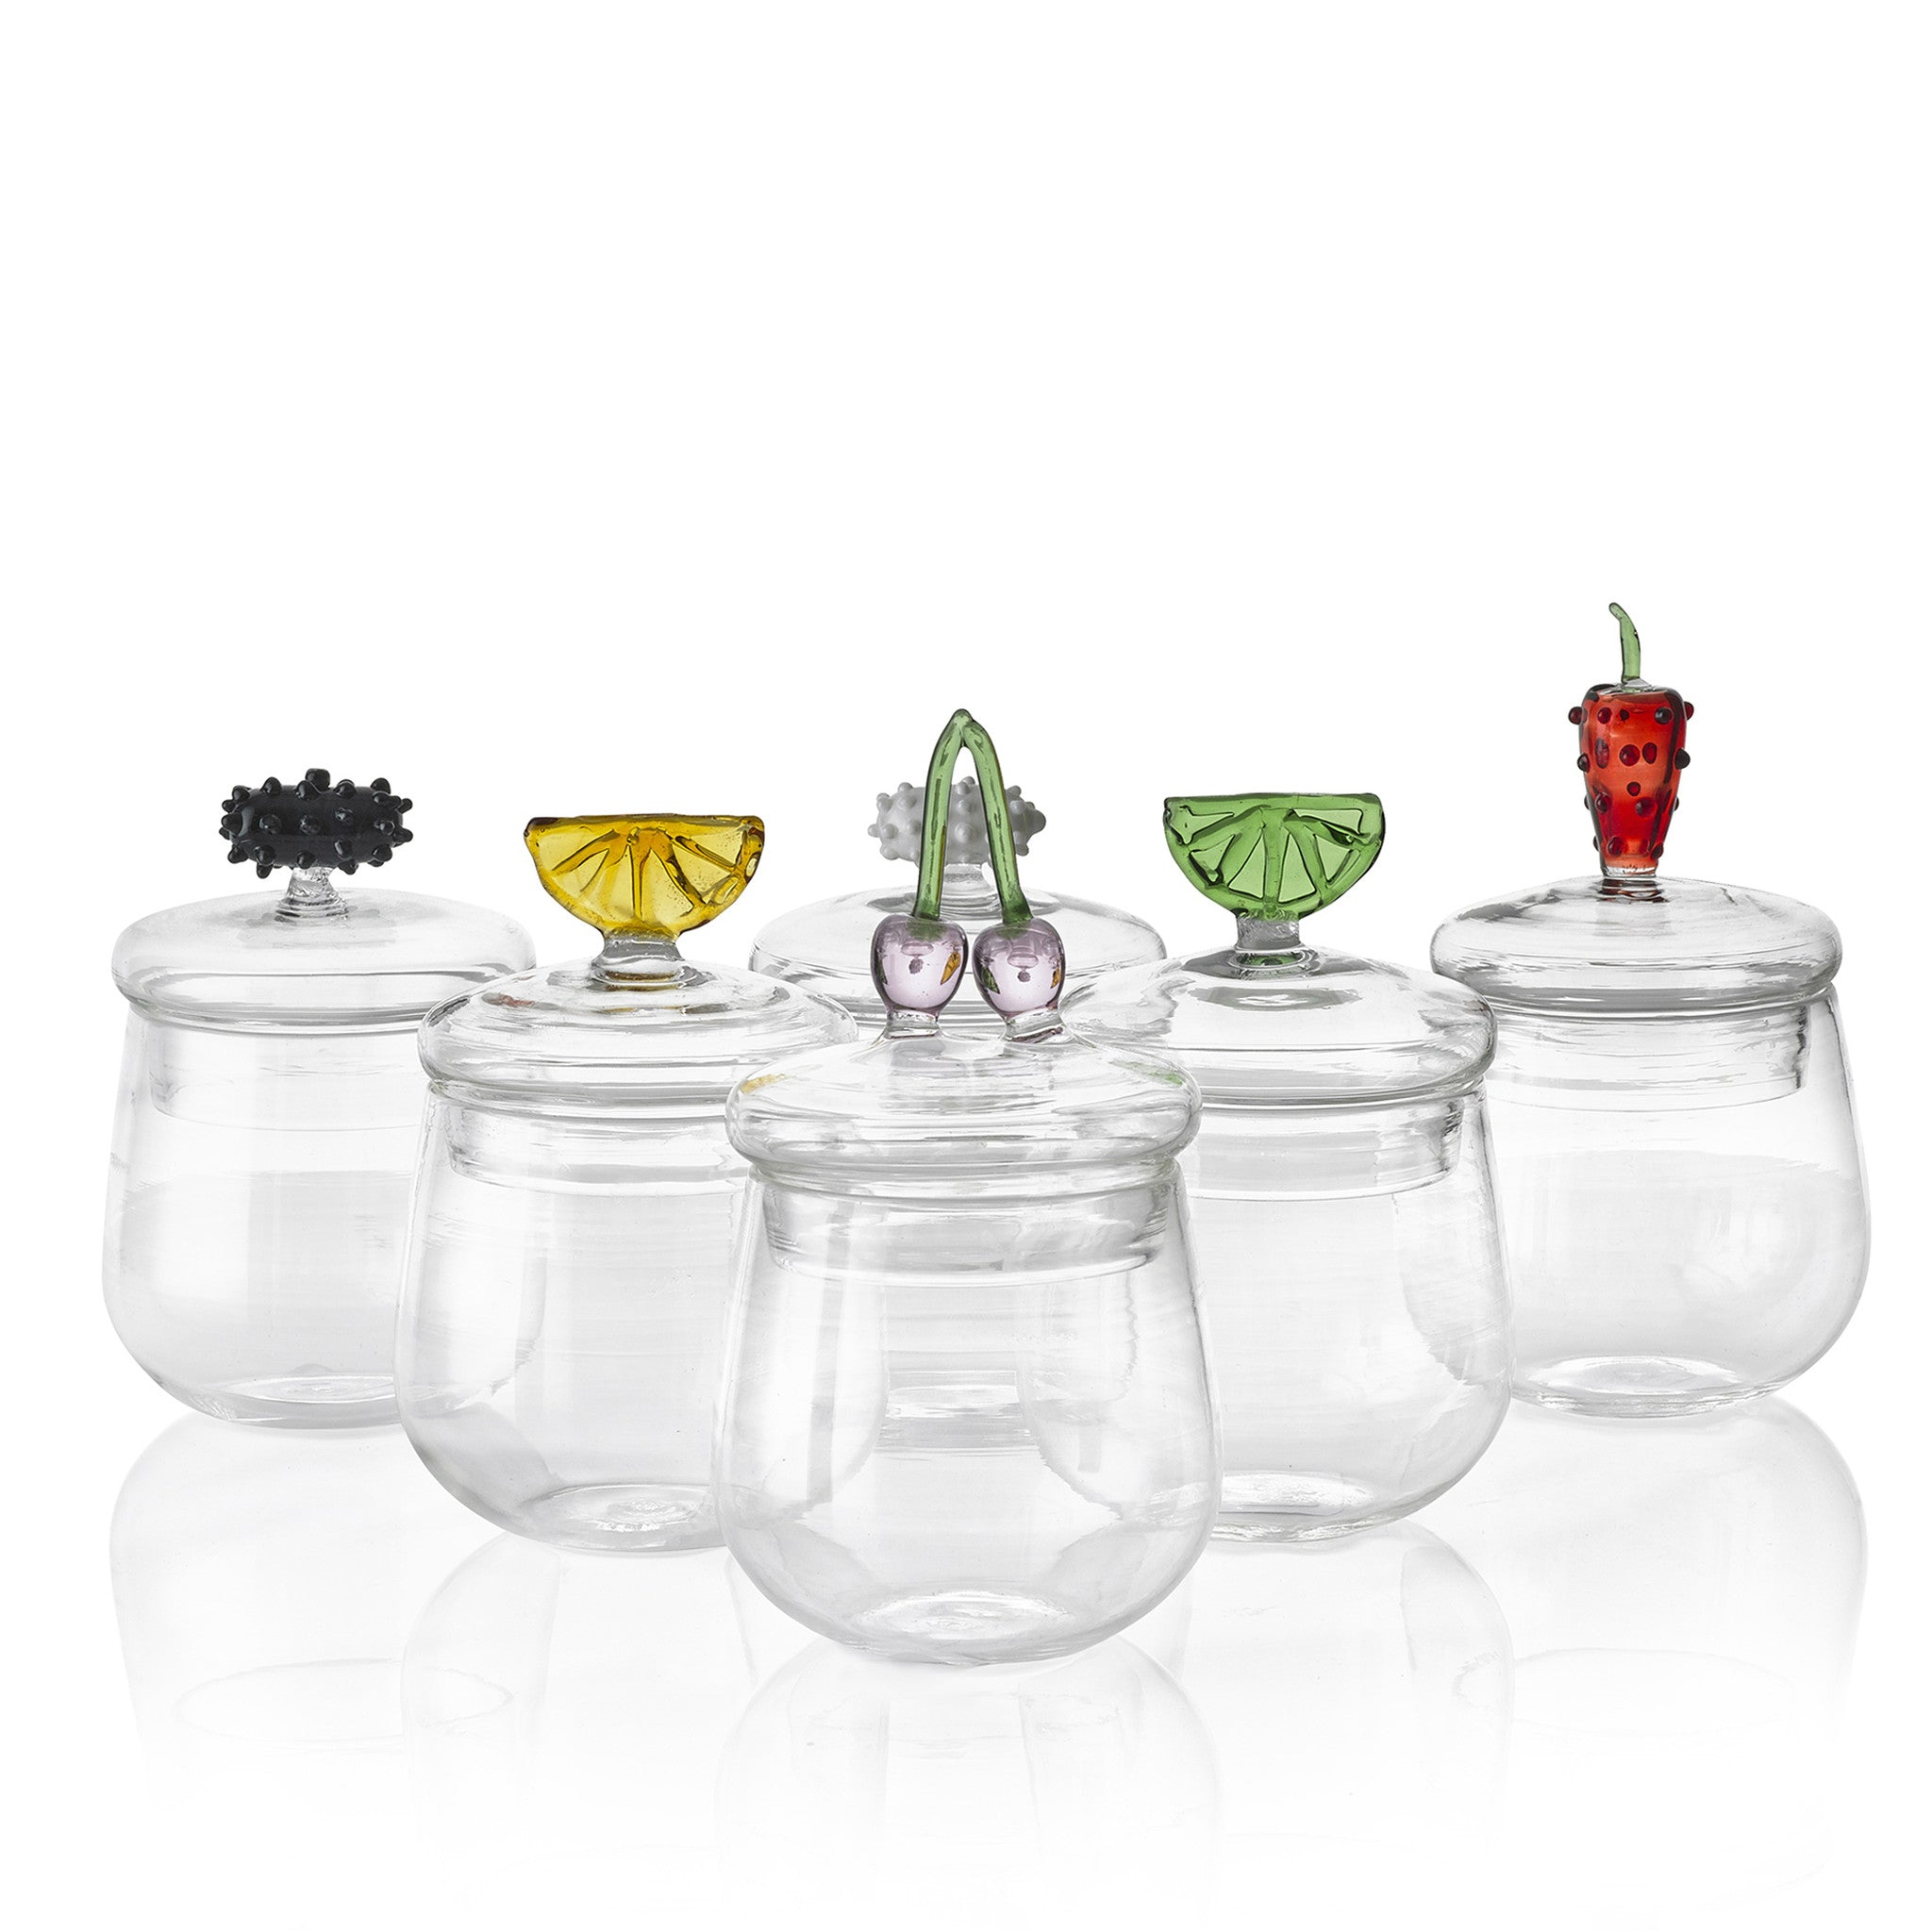 Glass Jam Jar with White Mulberry Lid